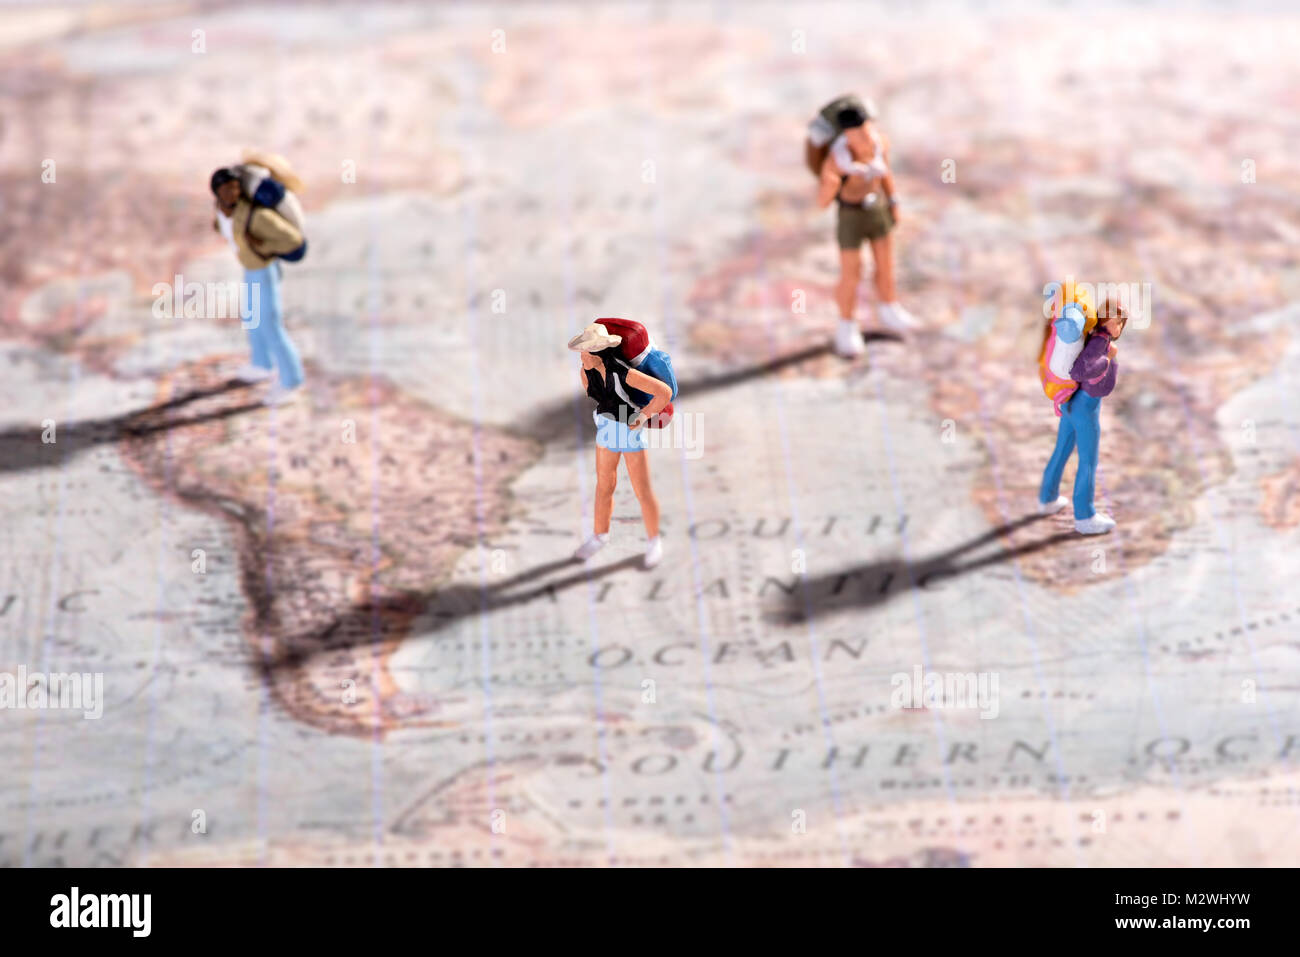 Group of young travellers miniature people figurines with backpacks on a world map standing on assorted destinations - Stock Image